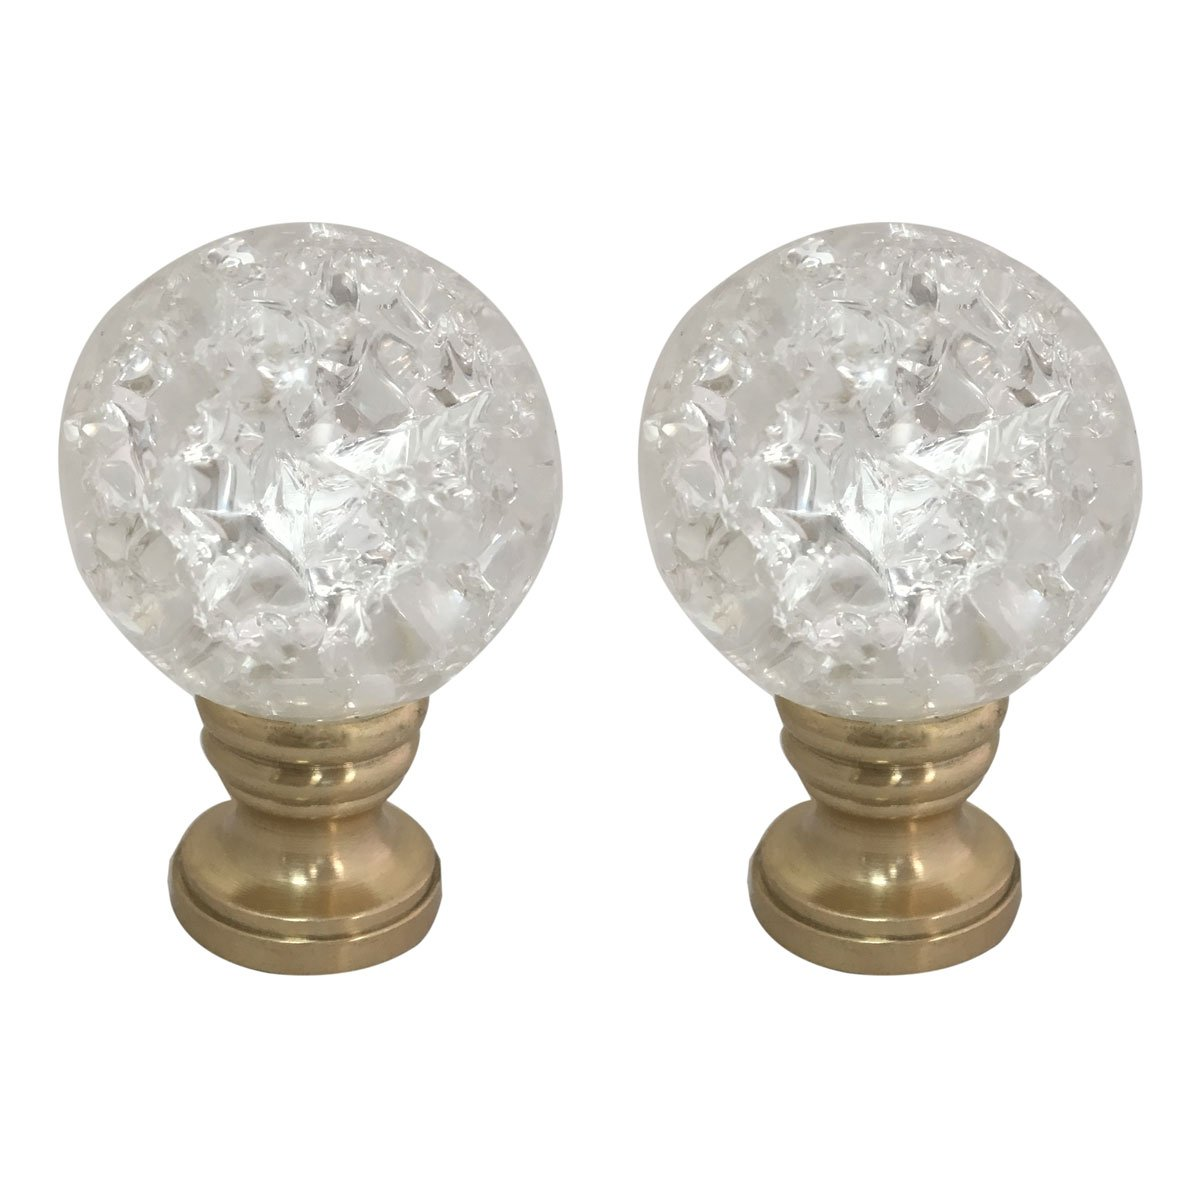 Royal Designs Small Clear Ball with Crackle Texture K9 Crystal Lamp Finial with Polished Brass Base - Set of 2